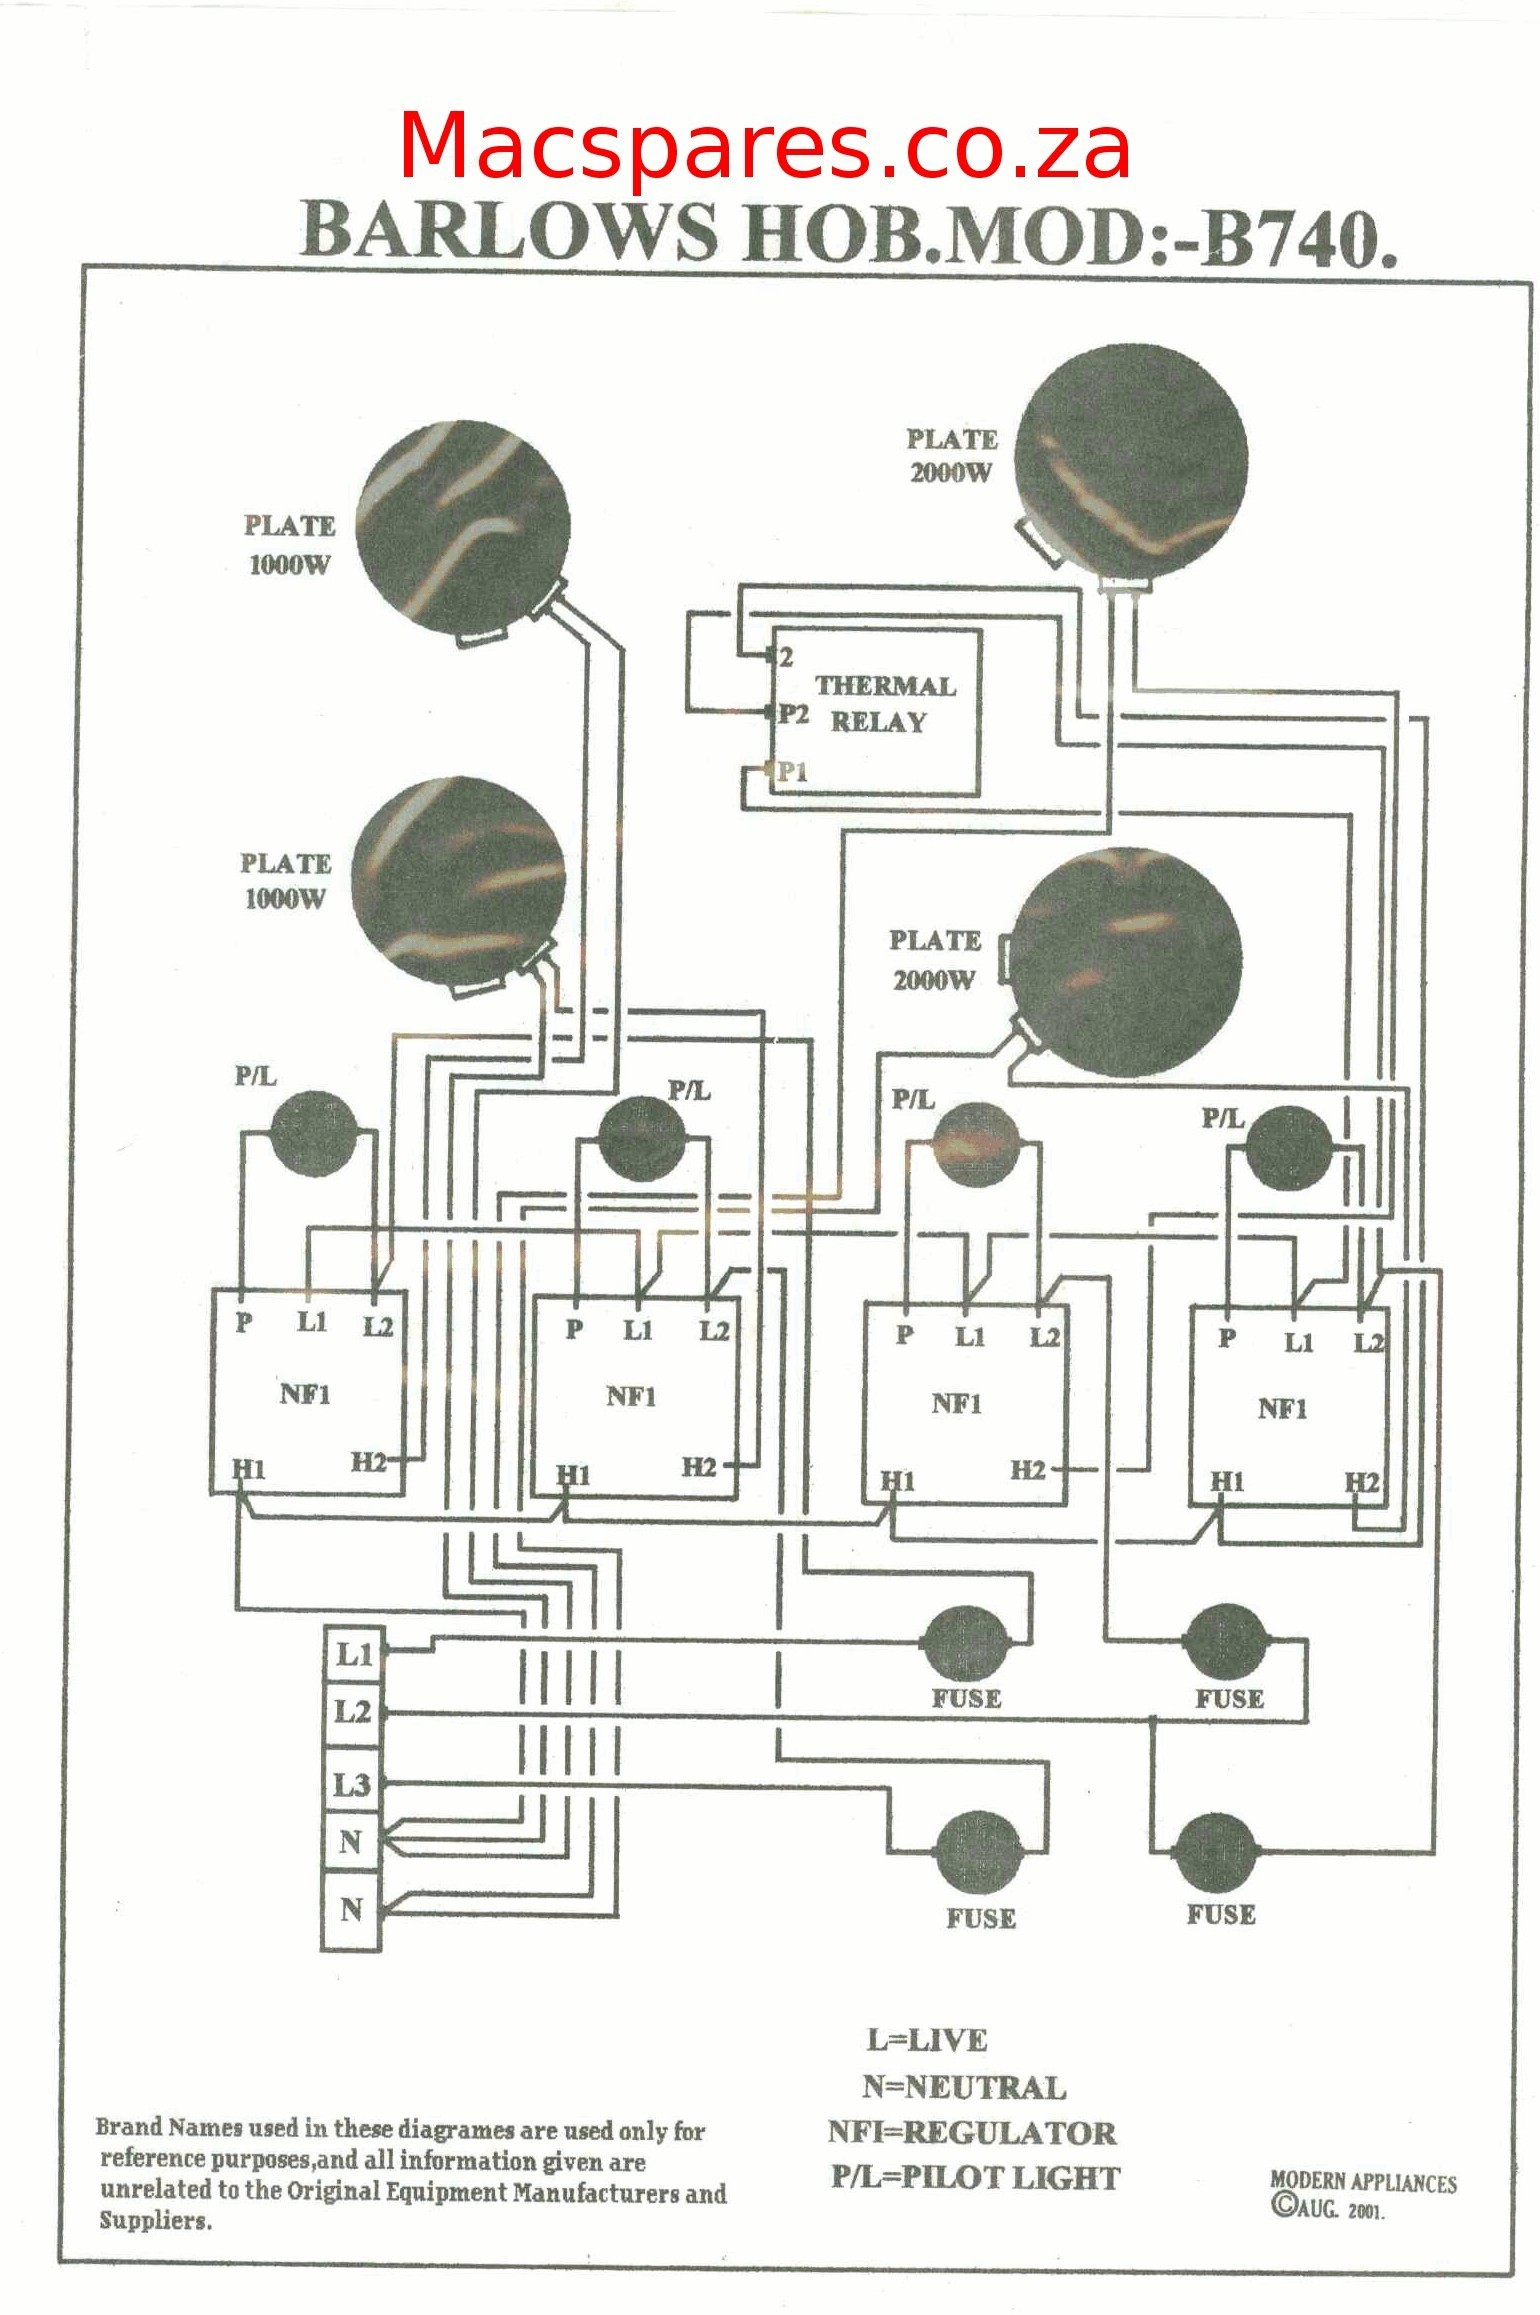 Wiring Diagram for Electric Stove Refrence Wiring Diagram for An Electric Stove Best Wiring Diagram for